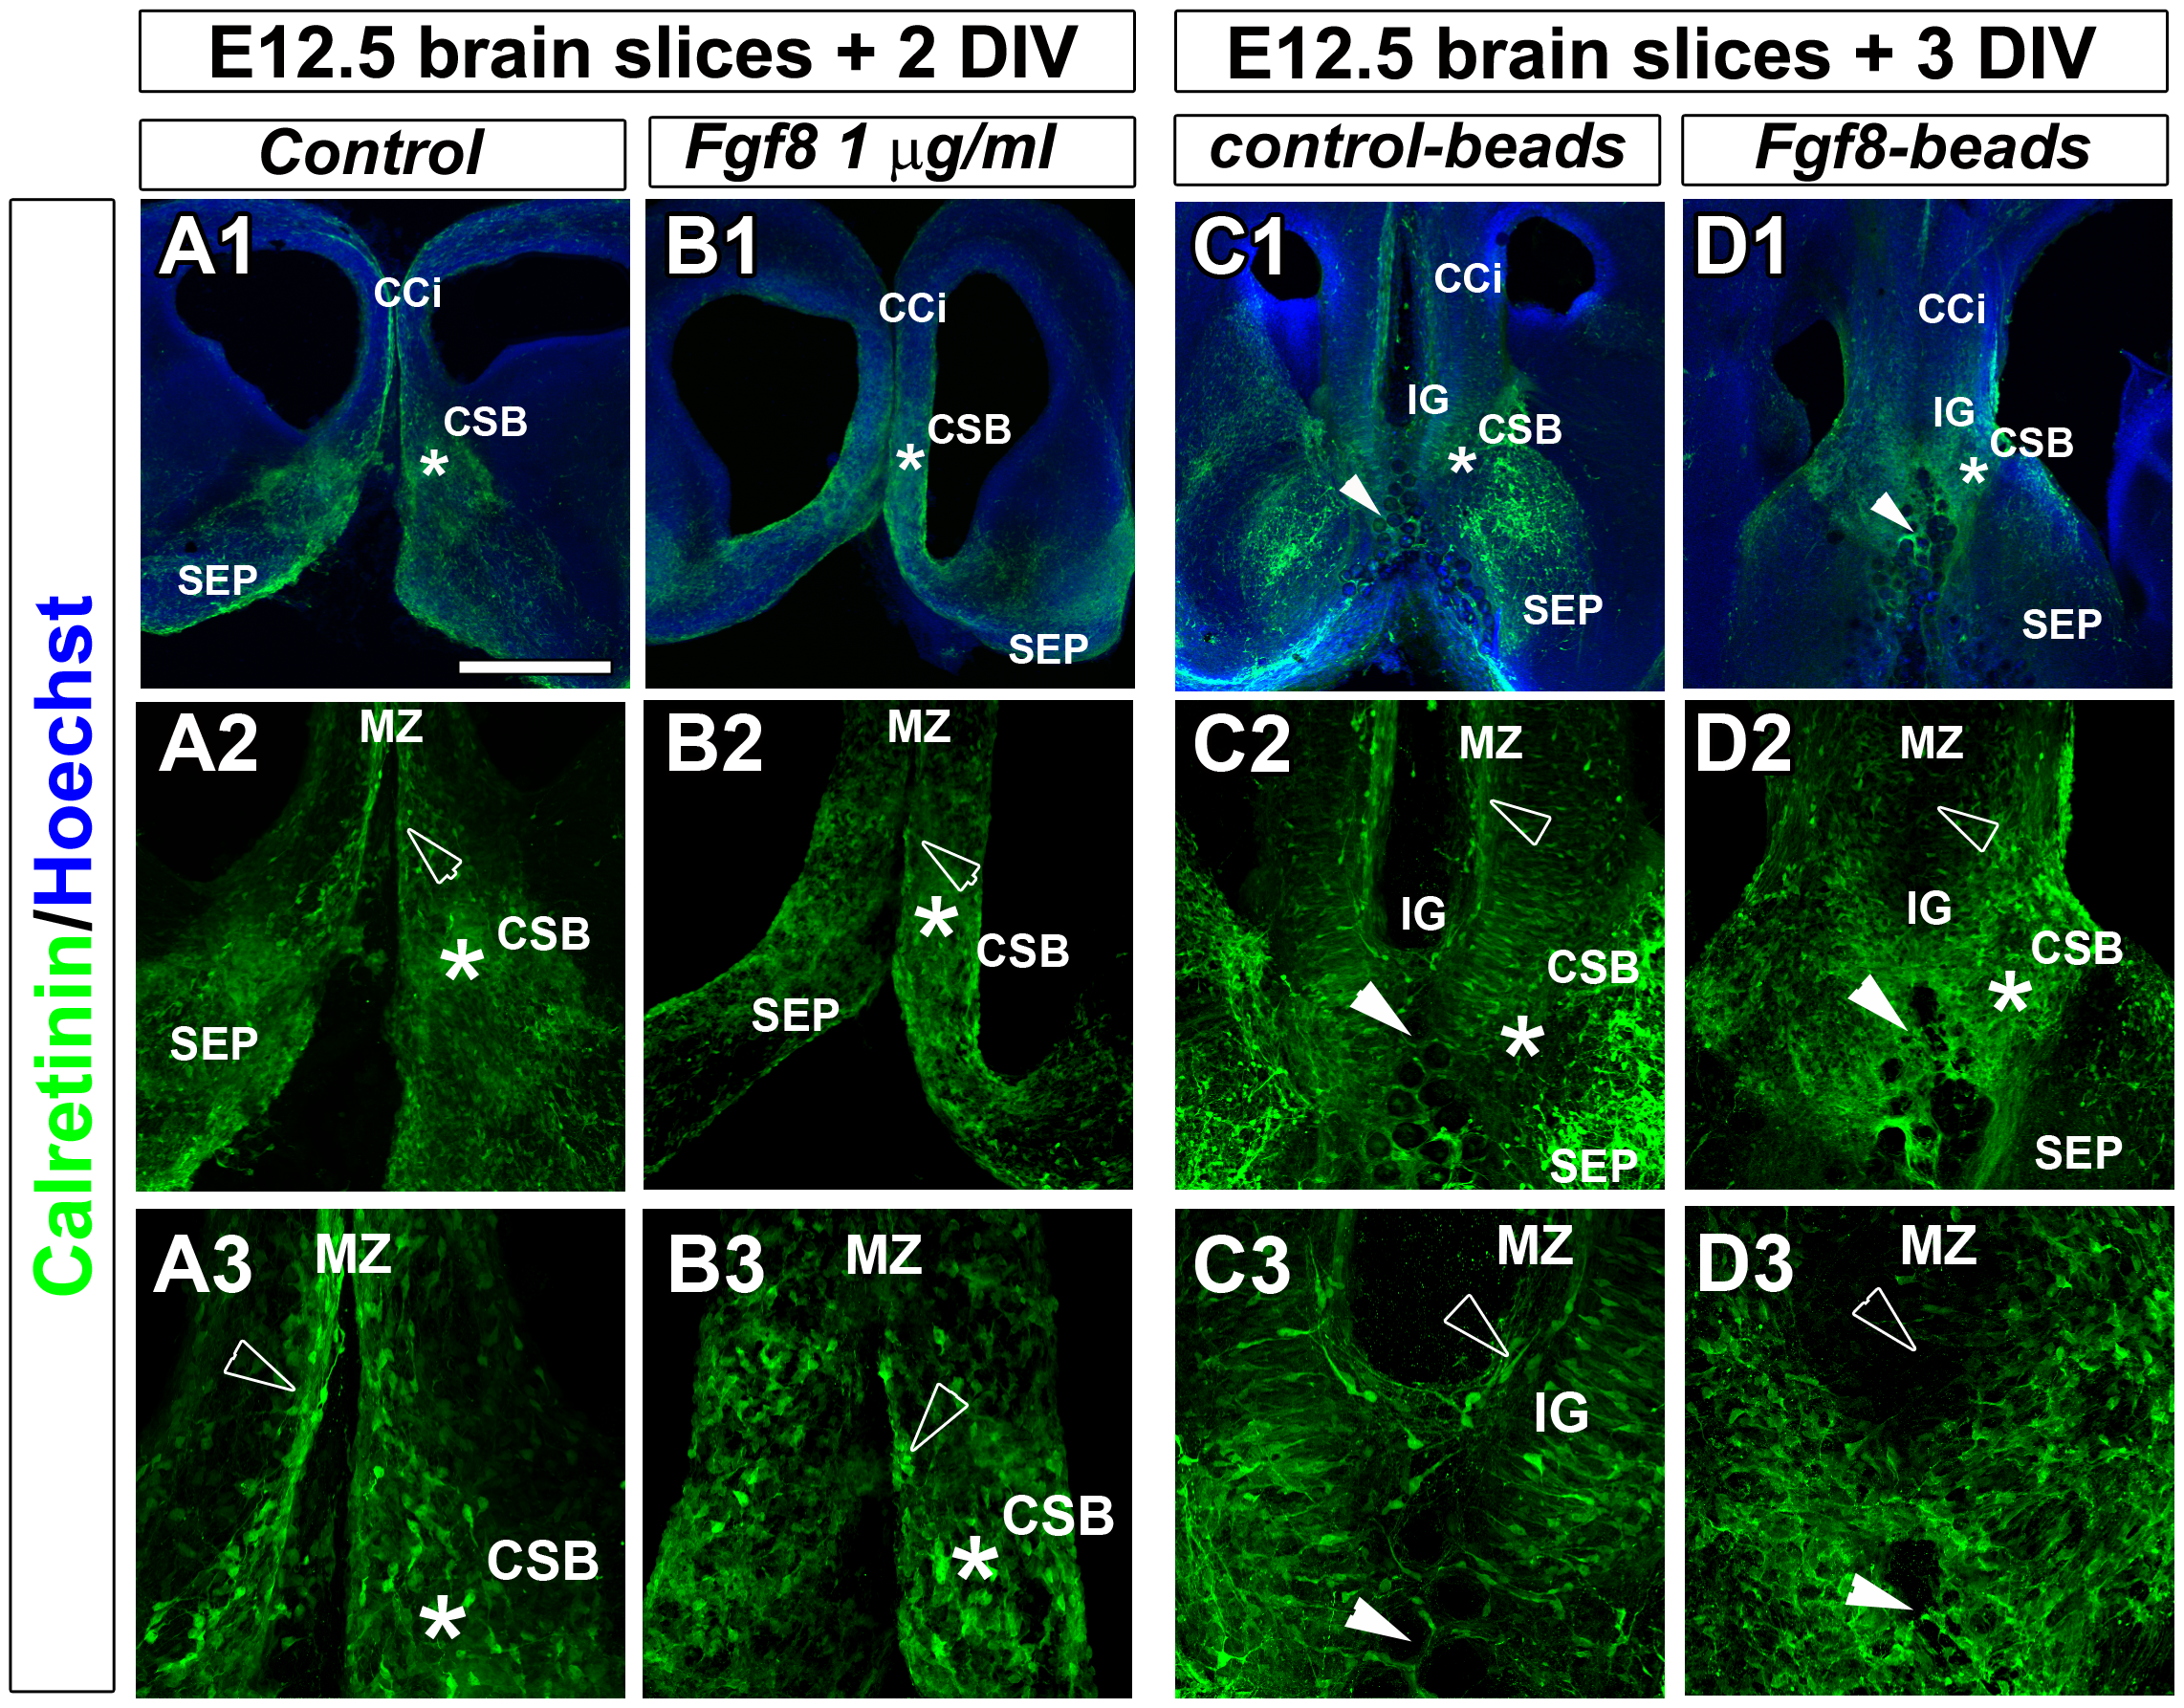 Fgf8 ectopic expression causes severe guidepost neurons mislocalization at the midline.